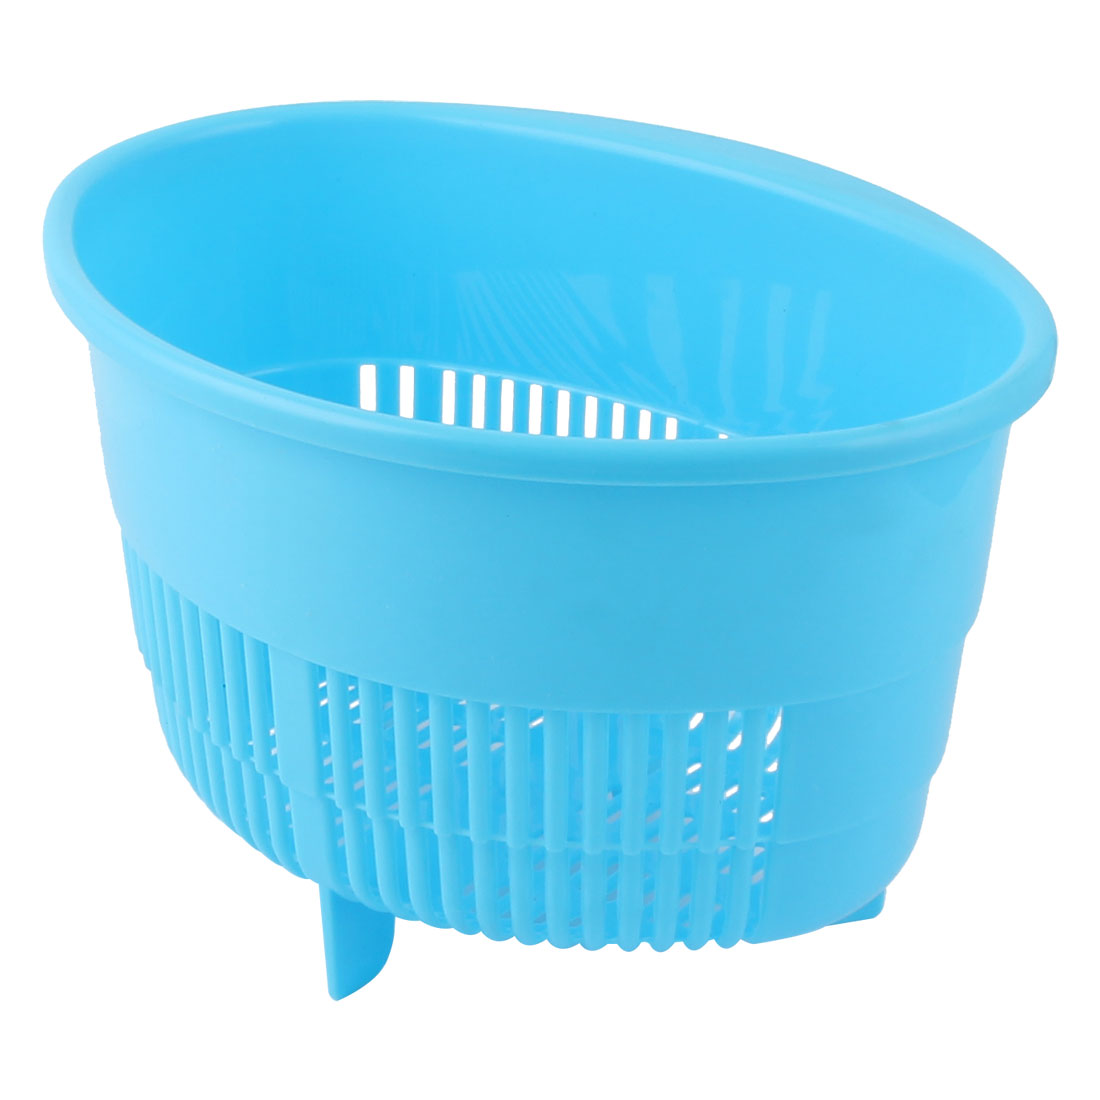 Household Kitchen Bathroom Plastic Oval Shaped Fruit Vegetables Drain Basket Holder Container Blue